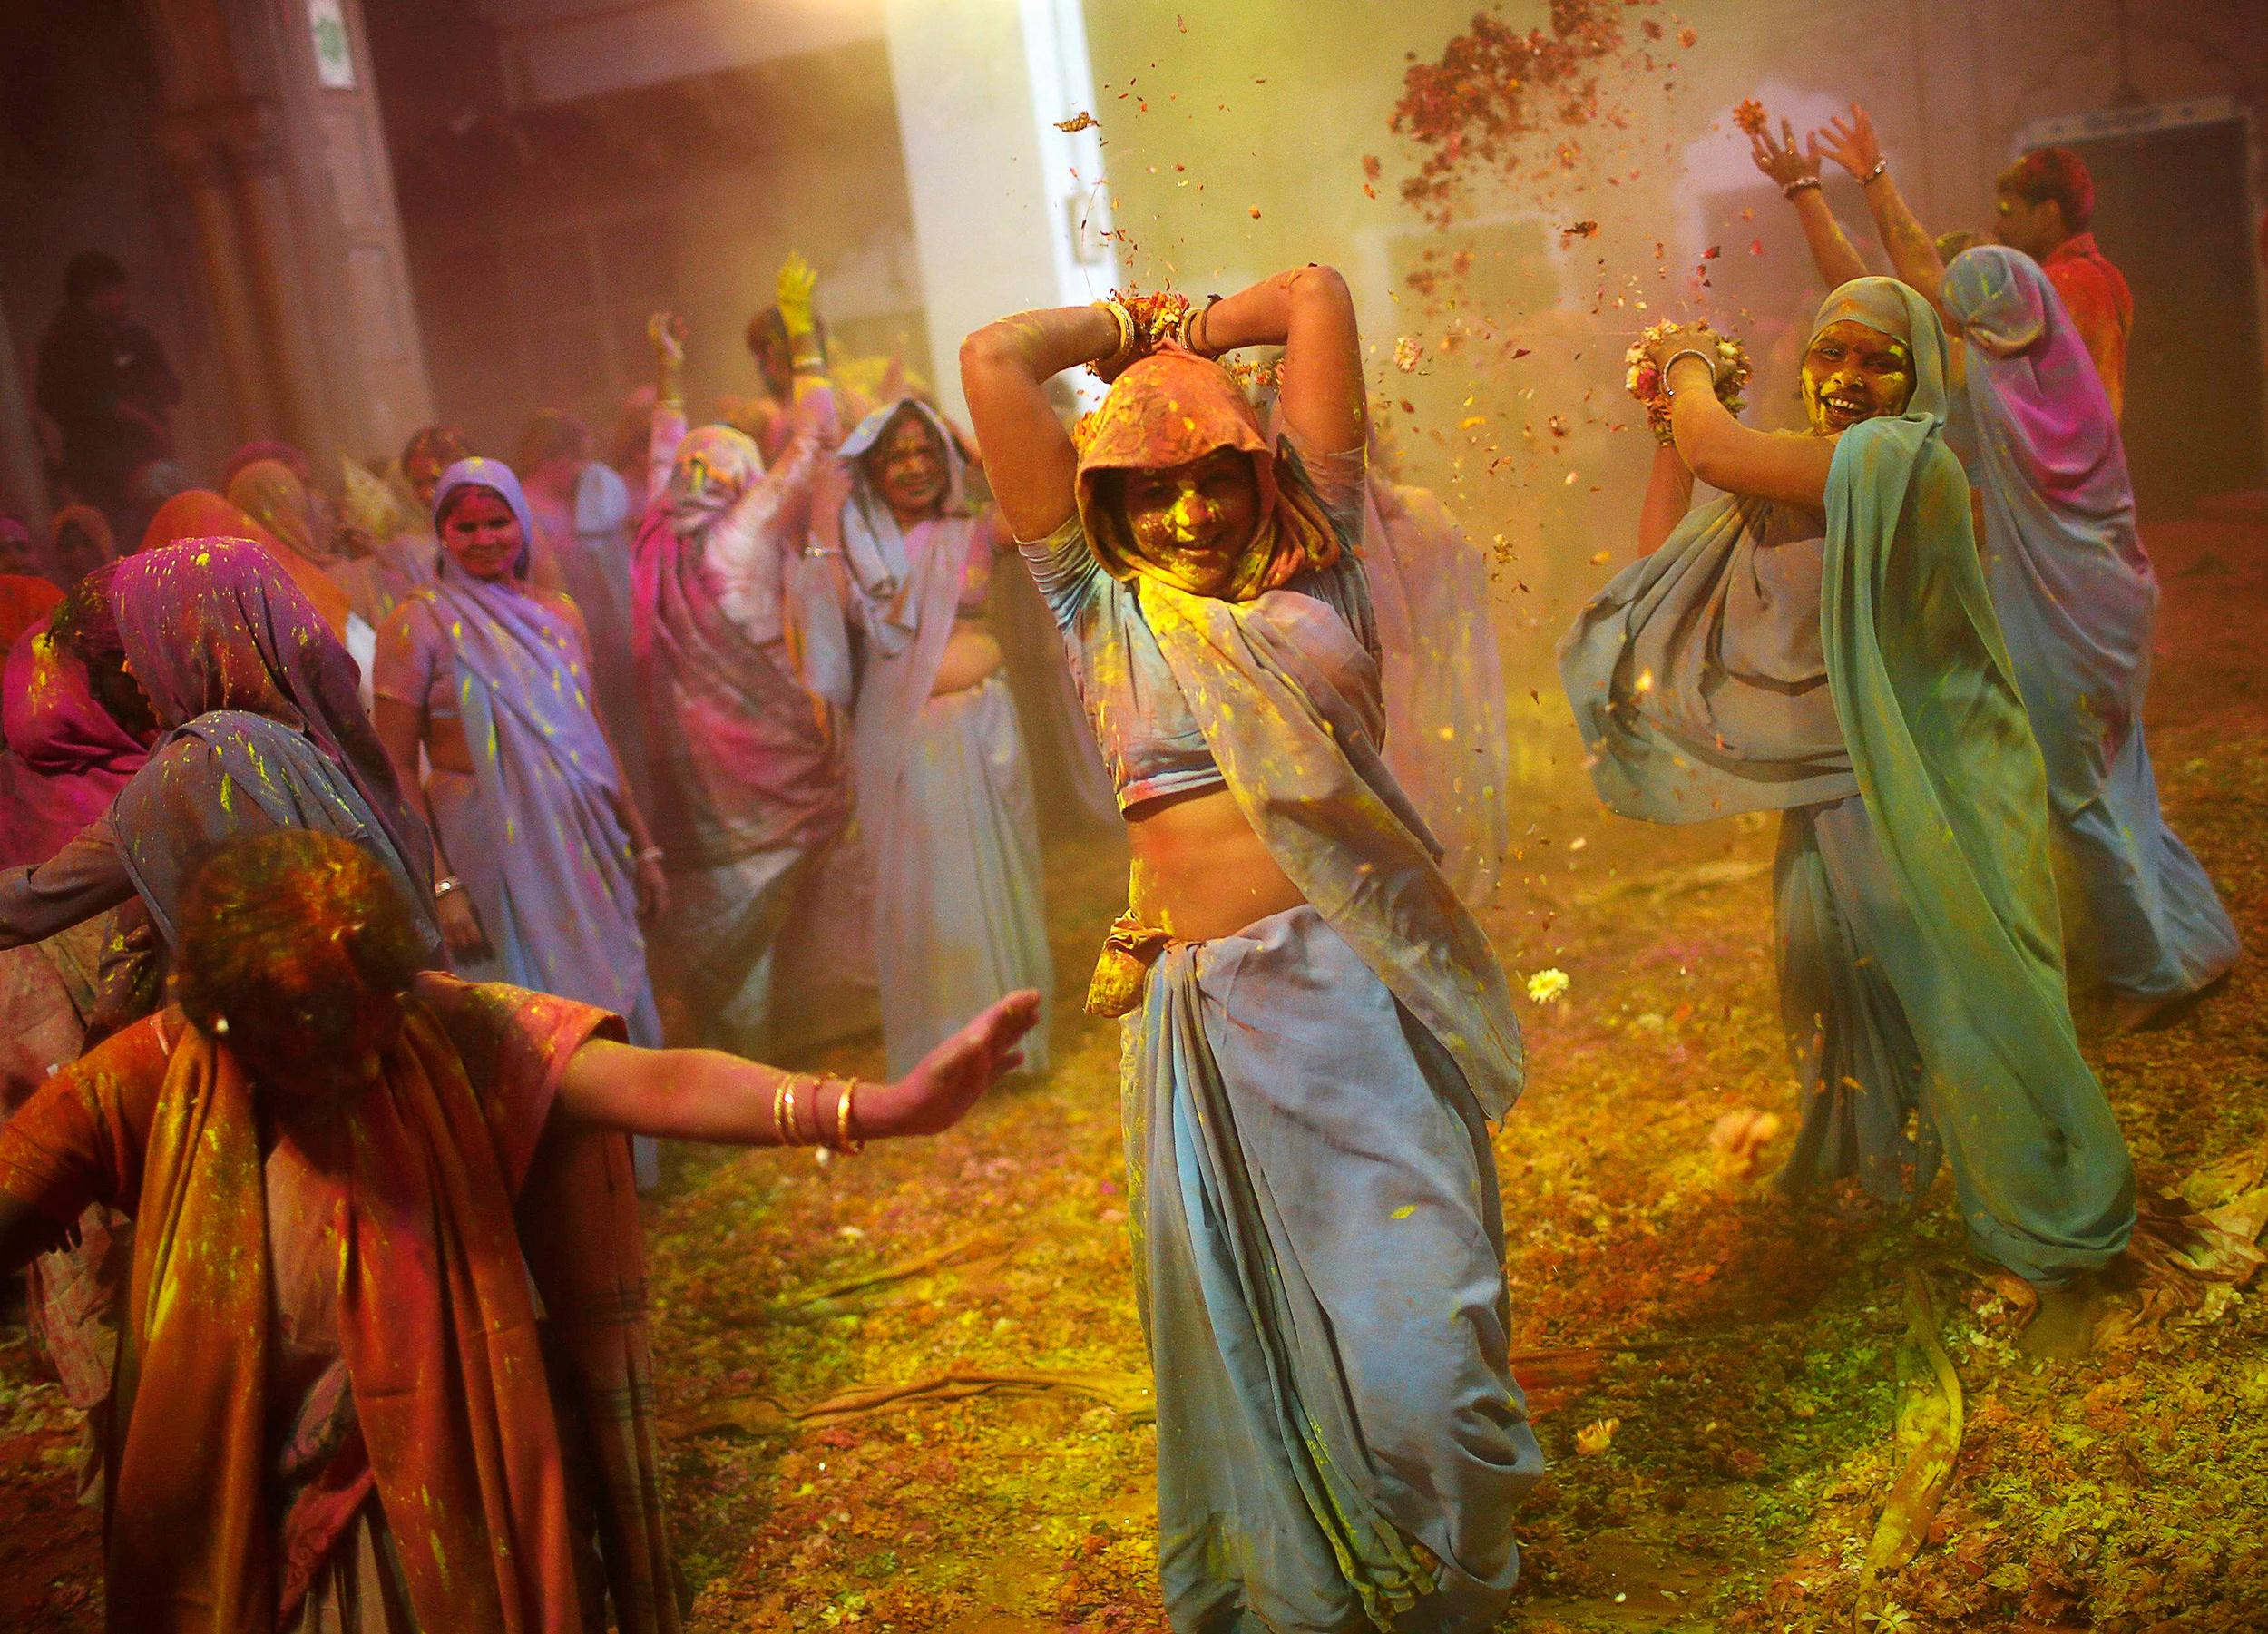 Breaking tradition widows celebrate holi festival in india nbc news